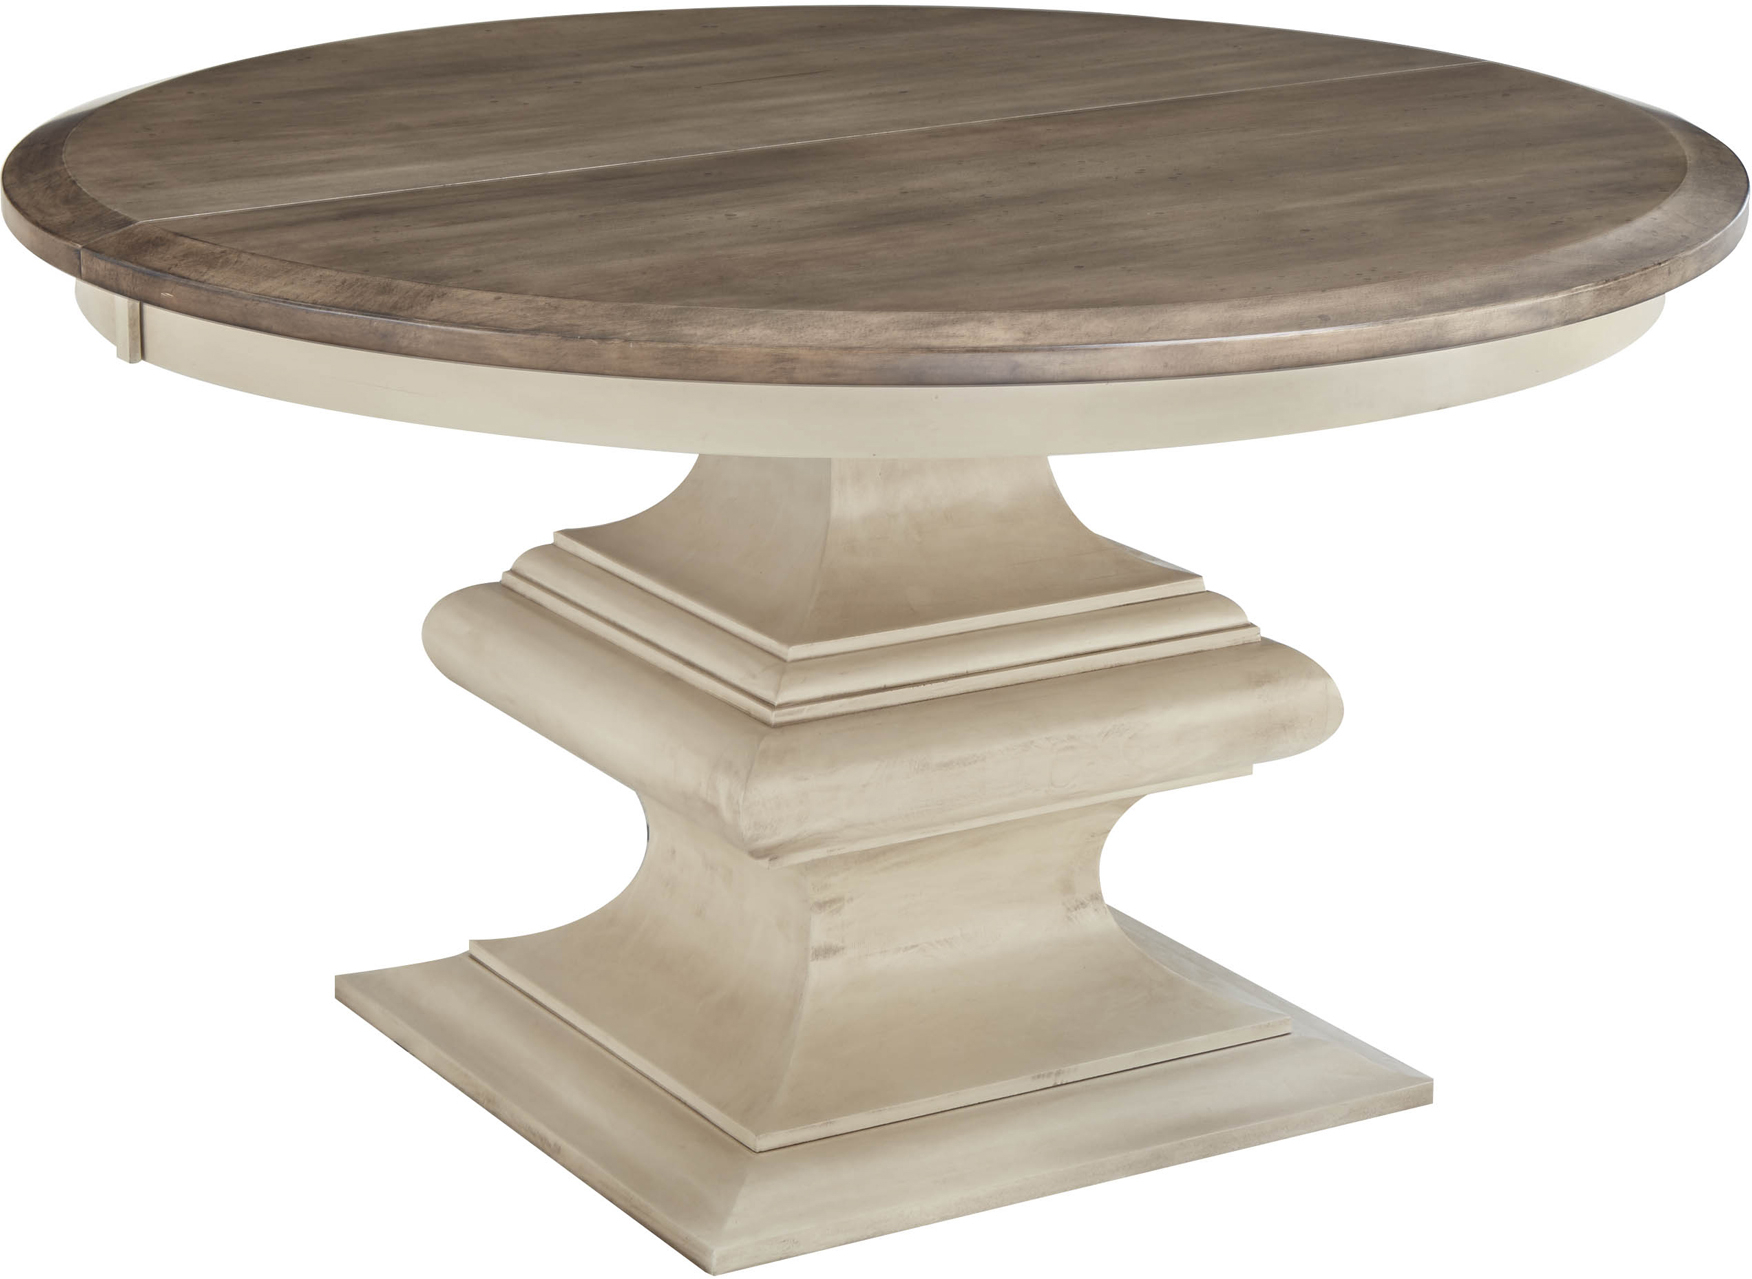 Normandy Table | Normandy Pedestal Table | Normandy Amish Table In Most Recently Released Normandy Extending Dining Tables (View 22 of 25)